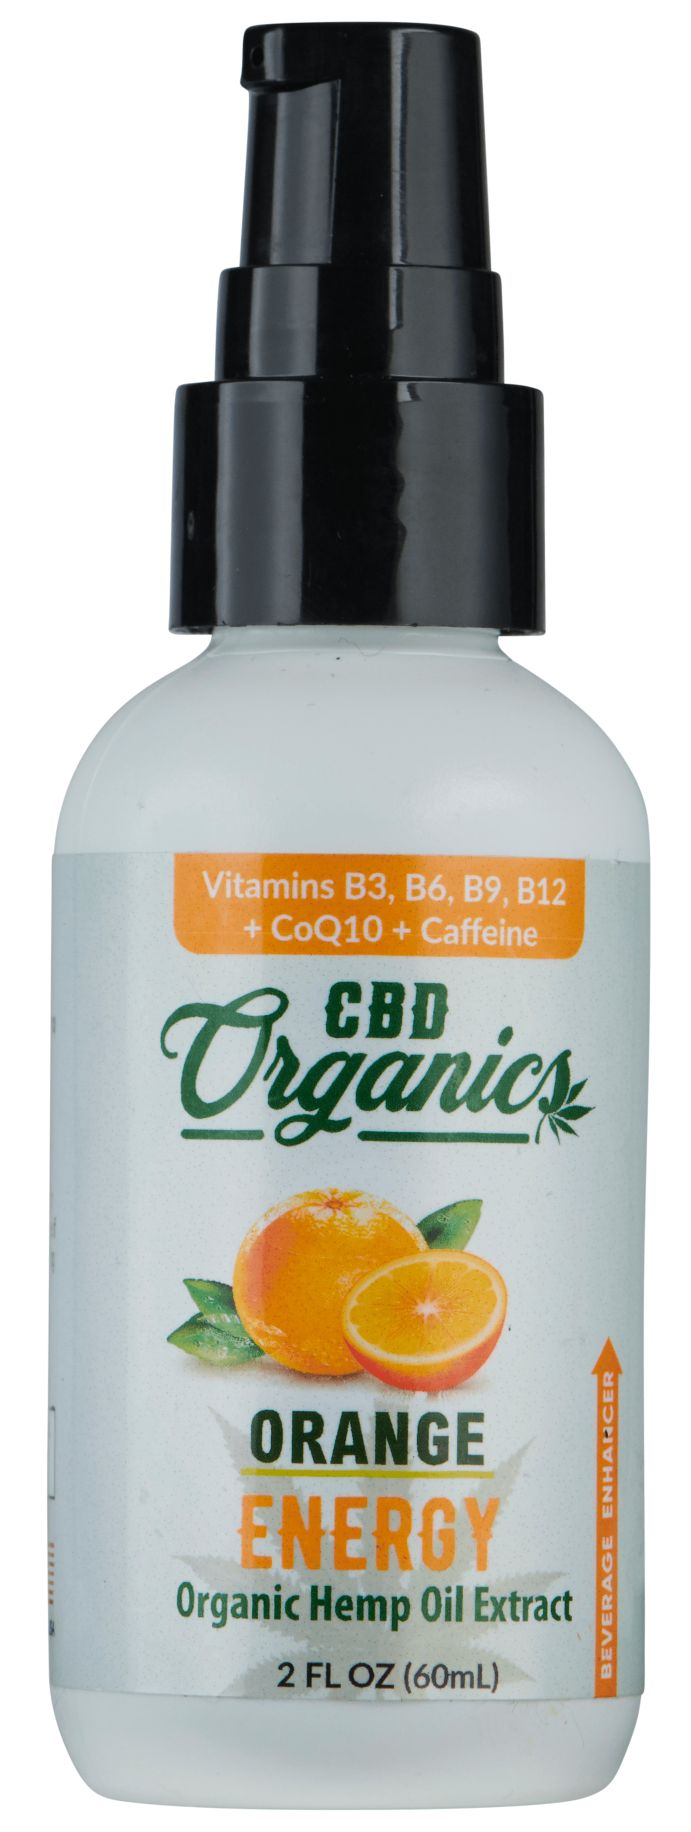 Energy Beverage Enhancer 150mg - Shop CBD Organics